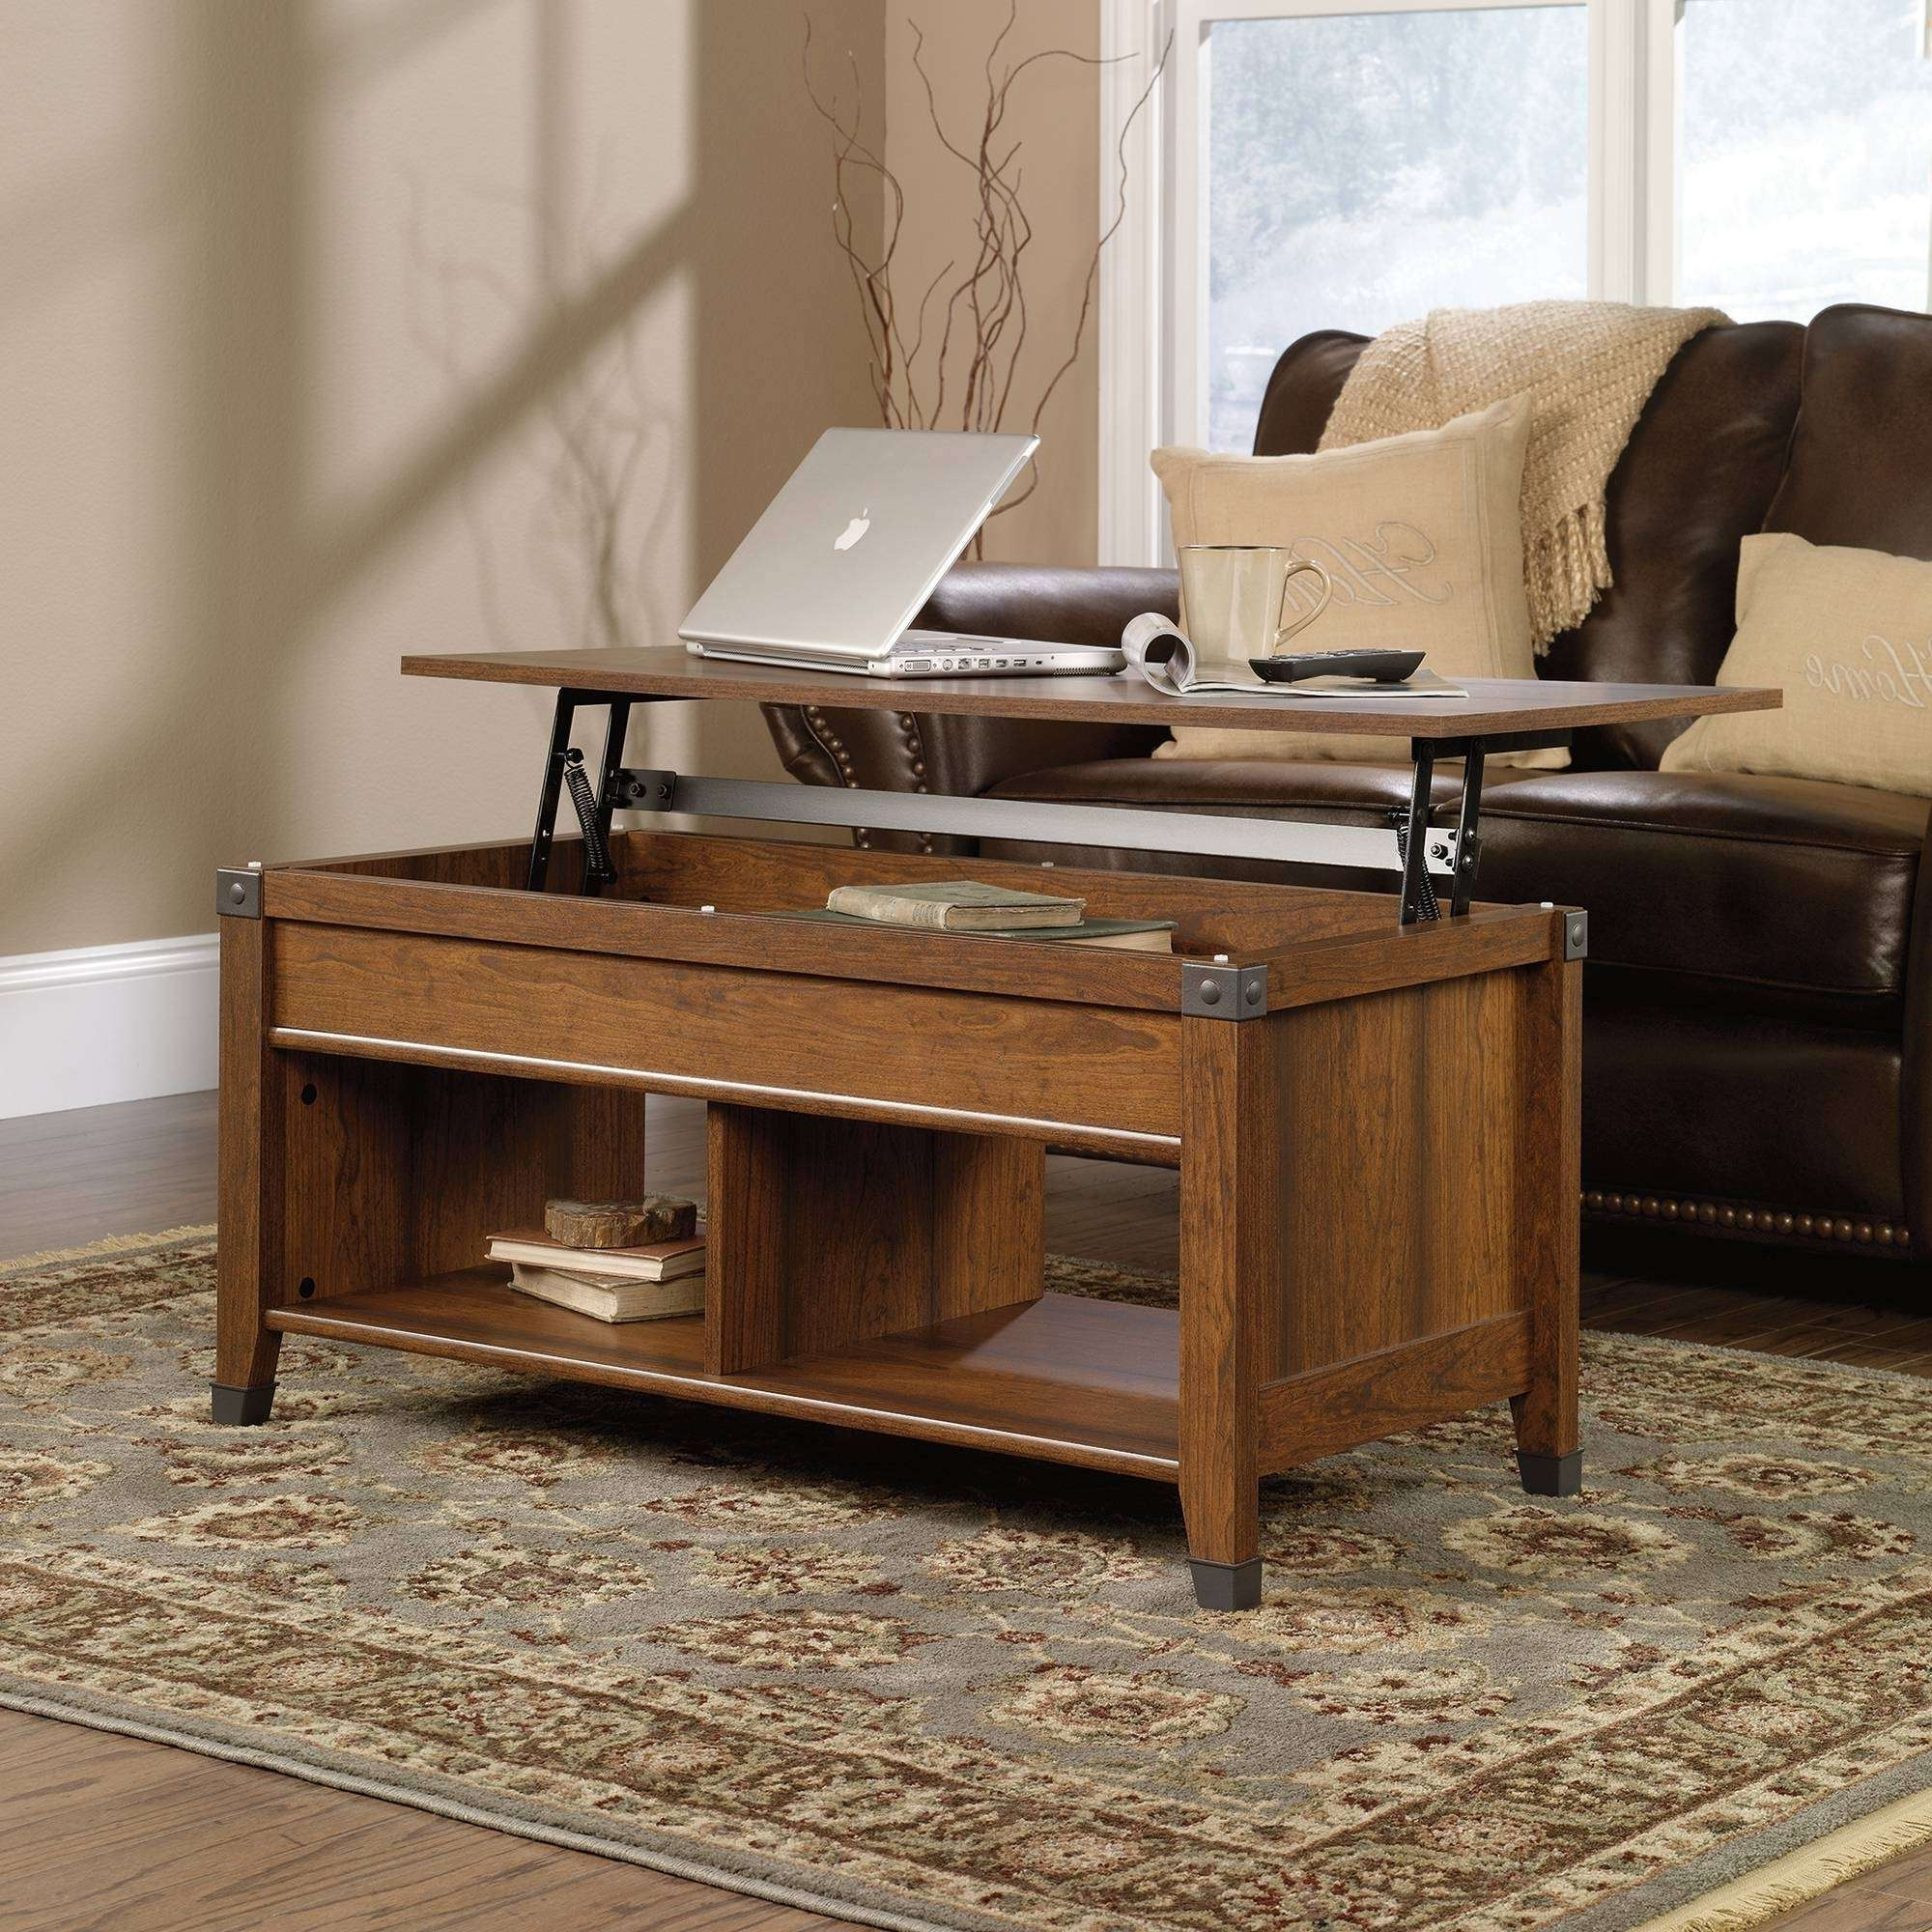 Collection Waverly Lift Top Coffee Table – Mediasupload In Most Recently Released Waverly Lift Top Coffee Tables (View 9 of 20)